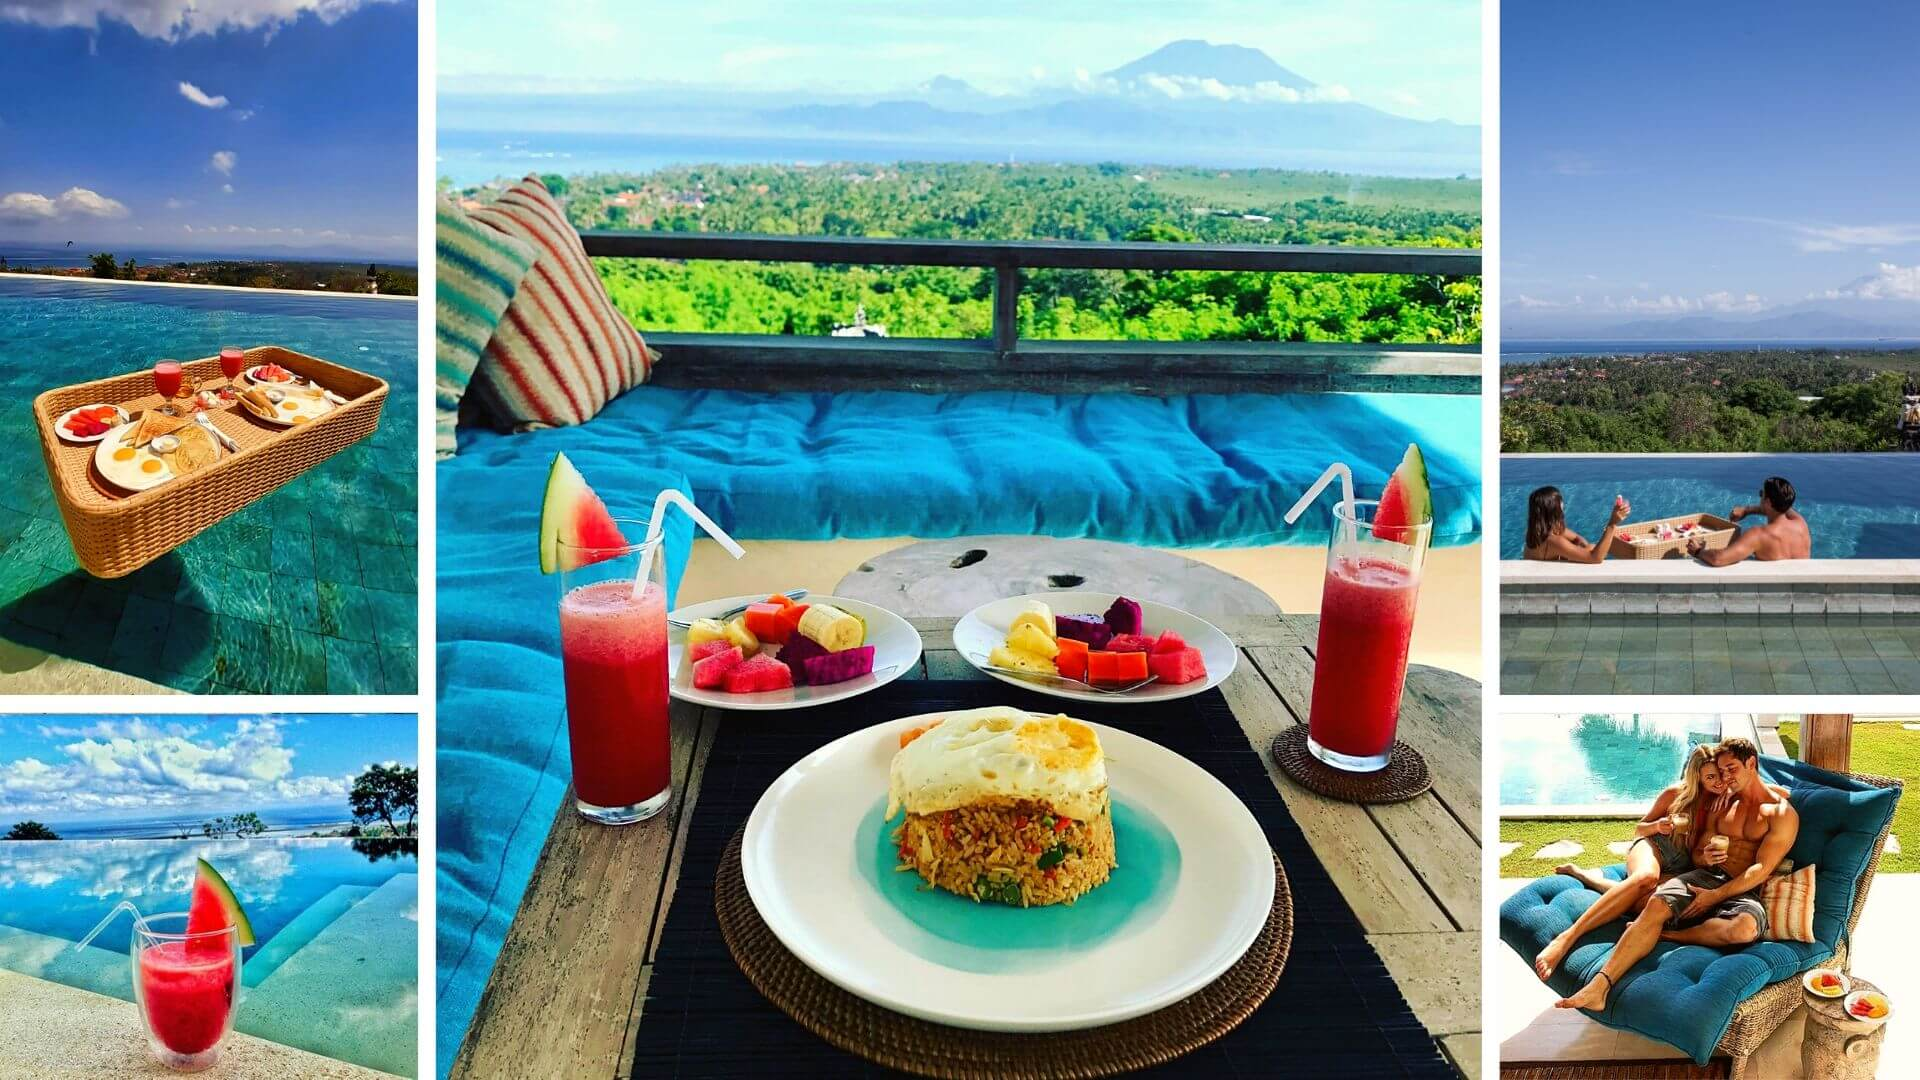 BREAKFAST COLLAGE AT VILLA 353 DEGREES NORTH on Nusa Lembongan